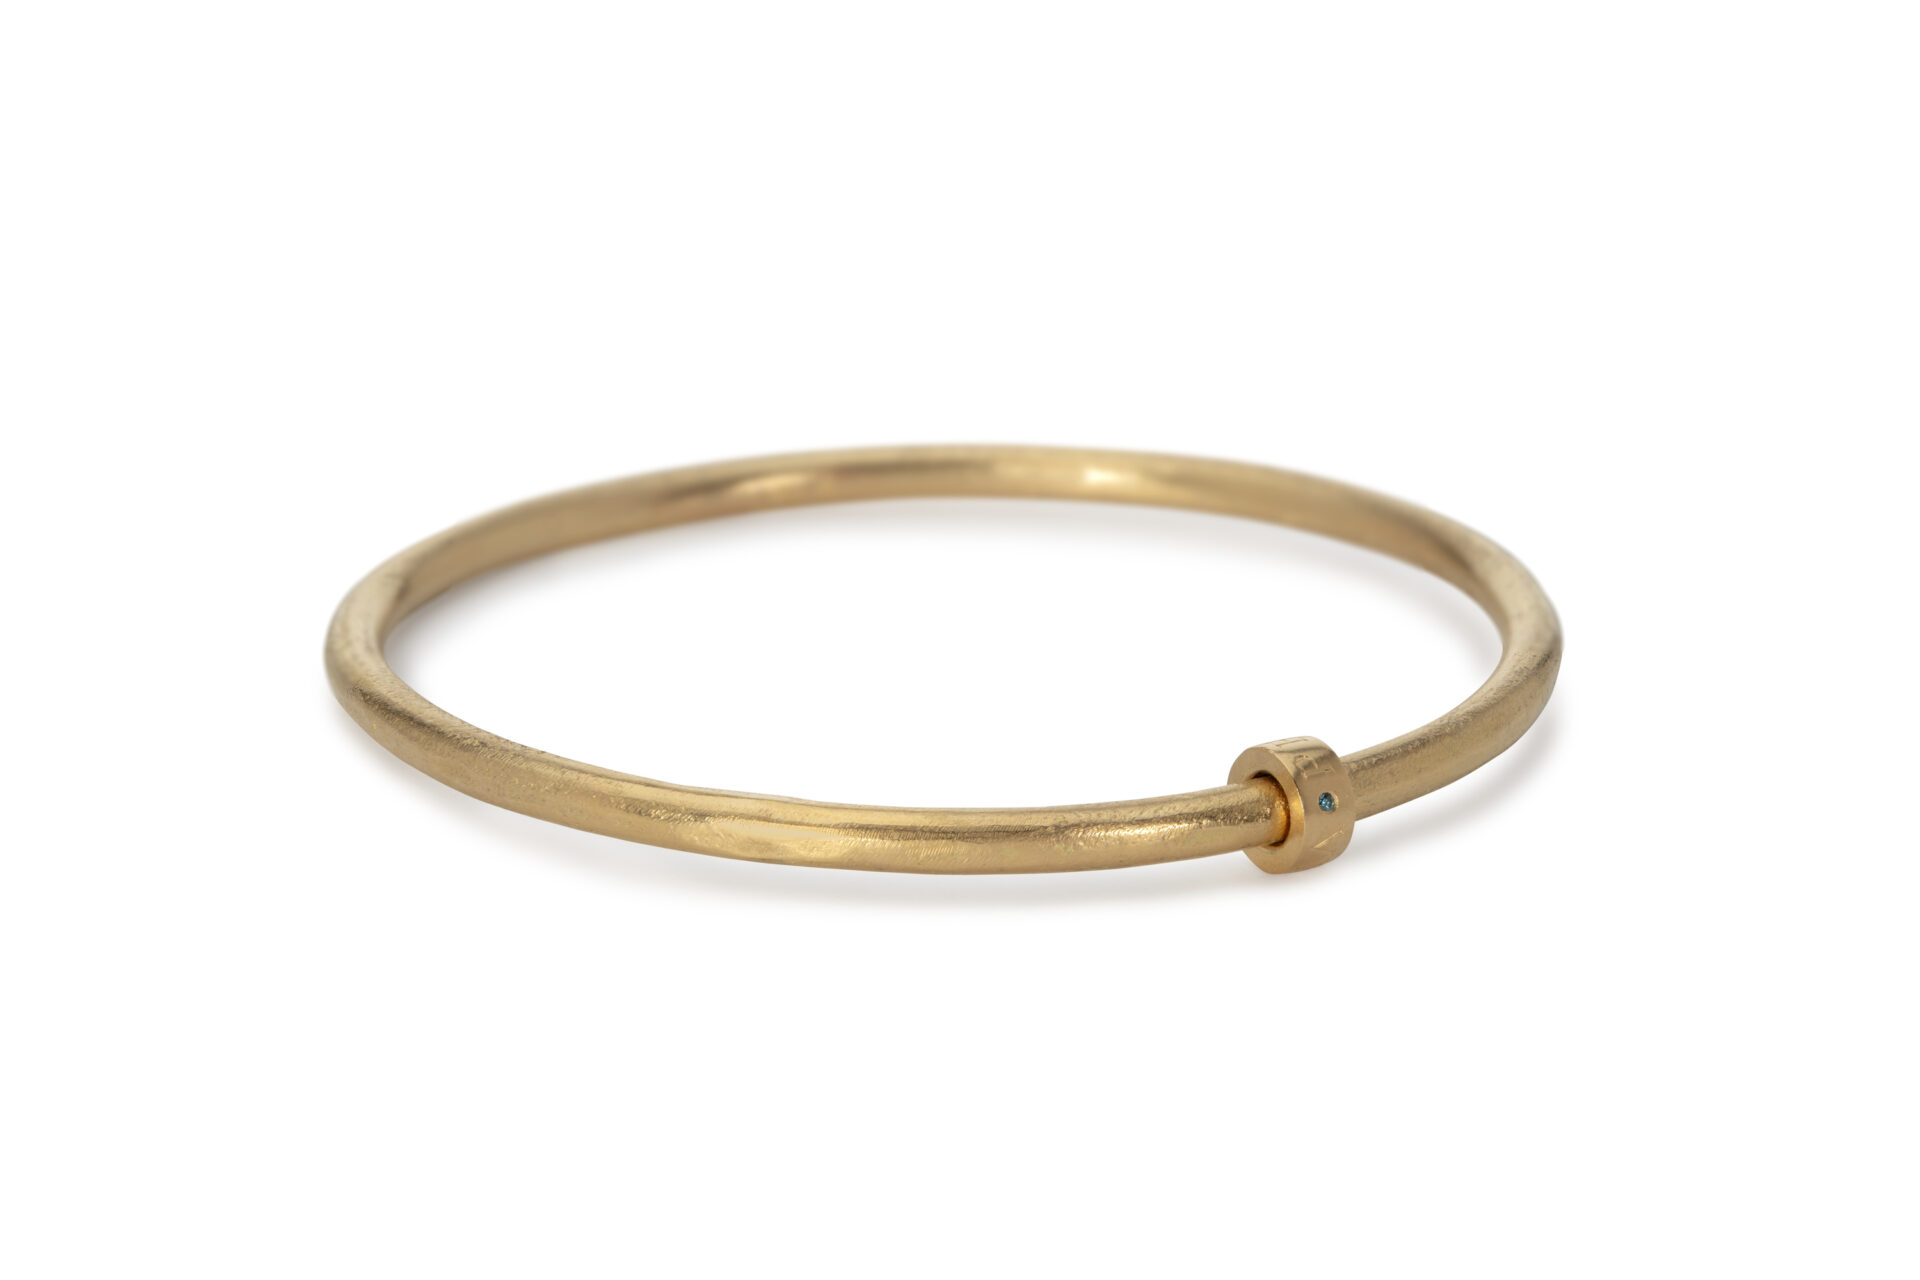 Susan's 18ct Yellow Gold Bangle